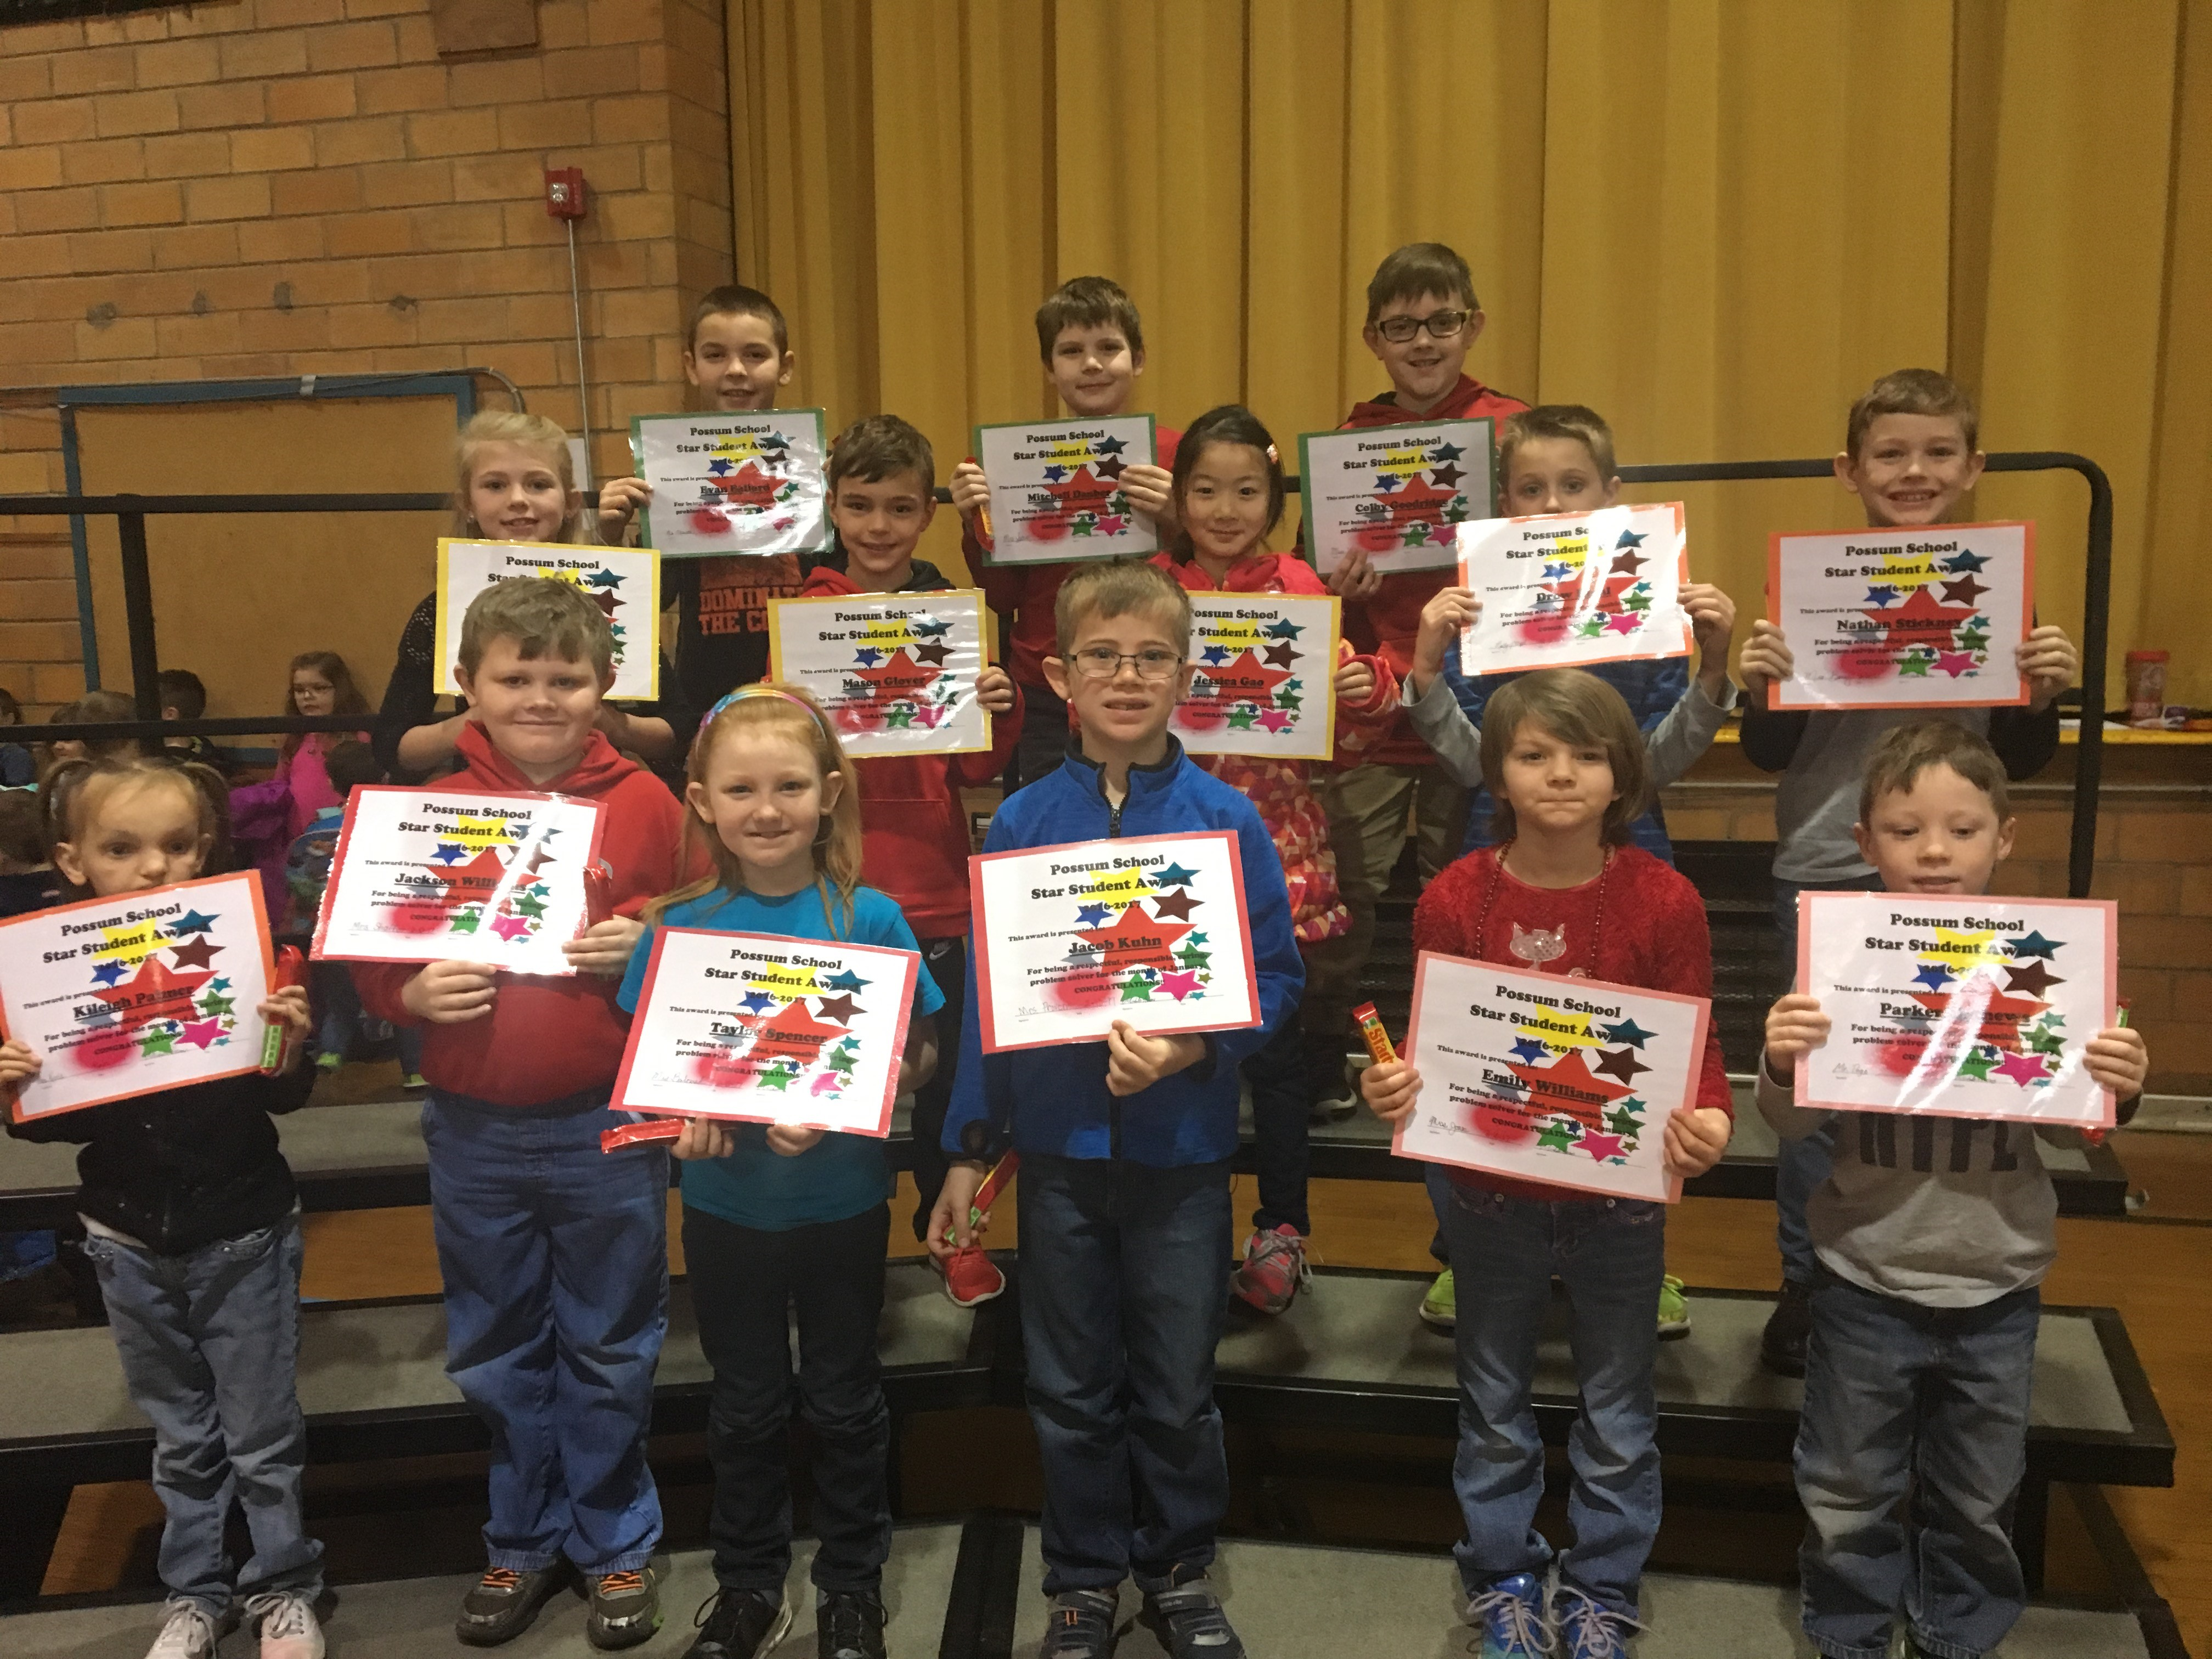 January Star Students - Elementary